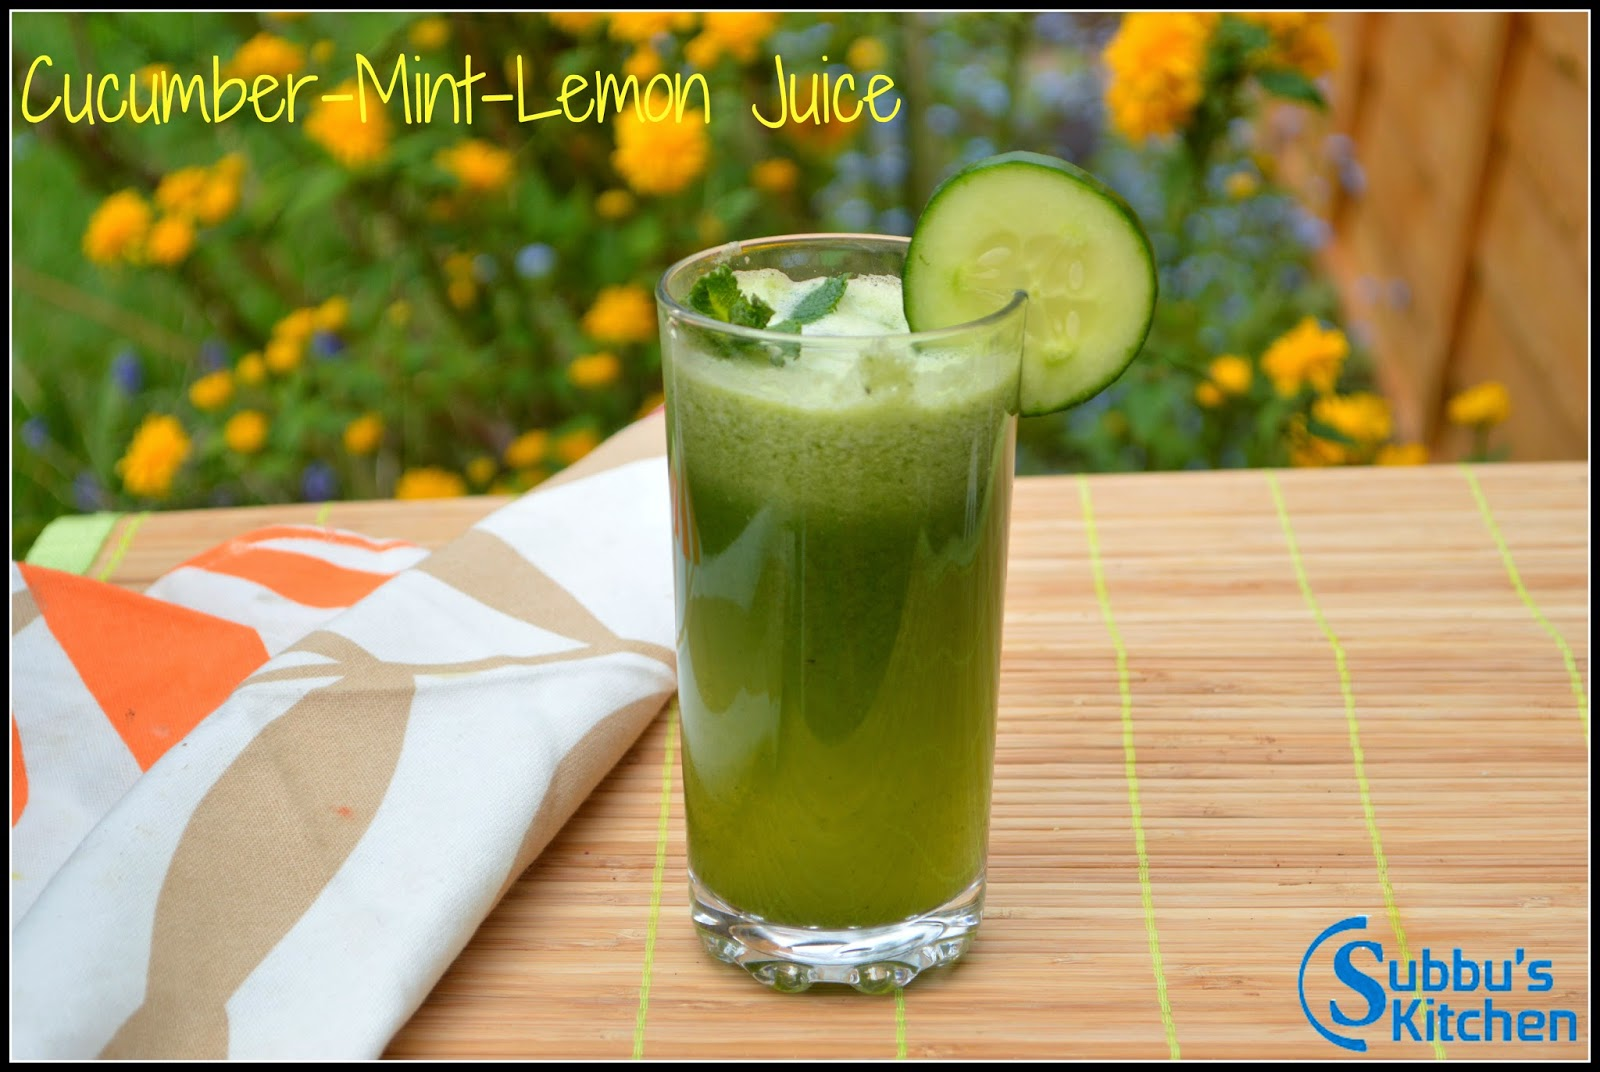 Cucumber-Mint-Lemon Juice